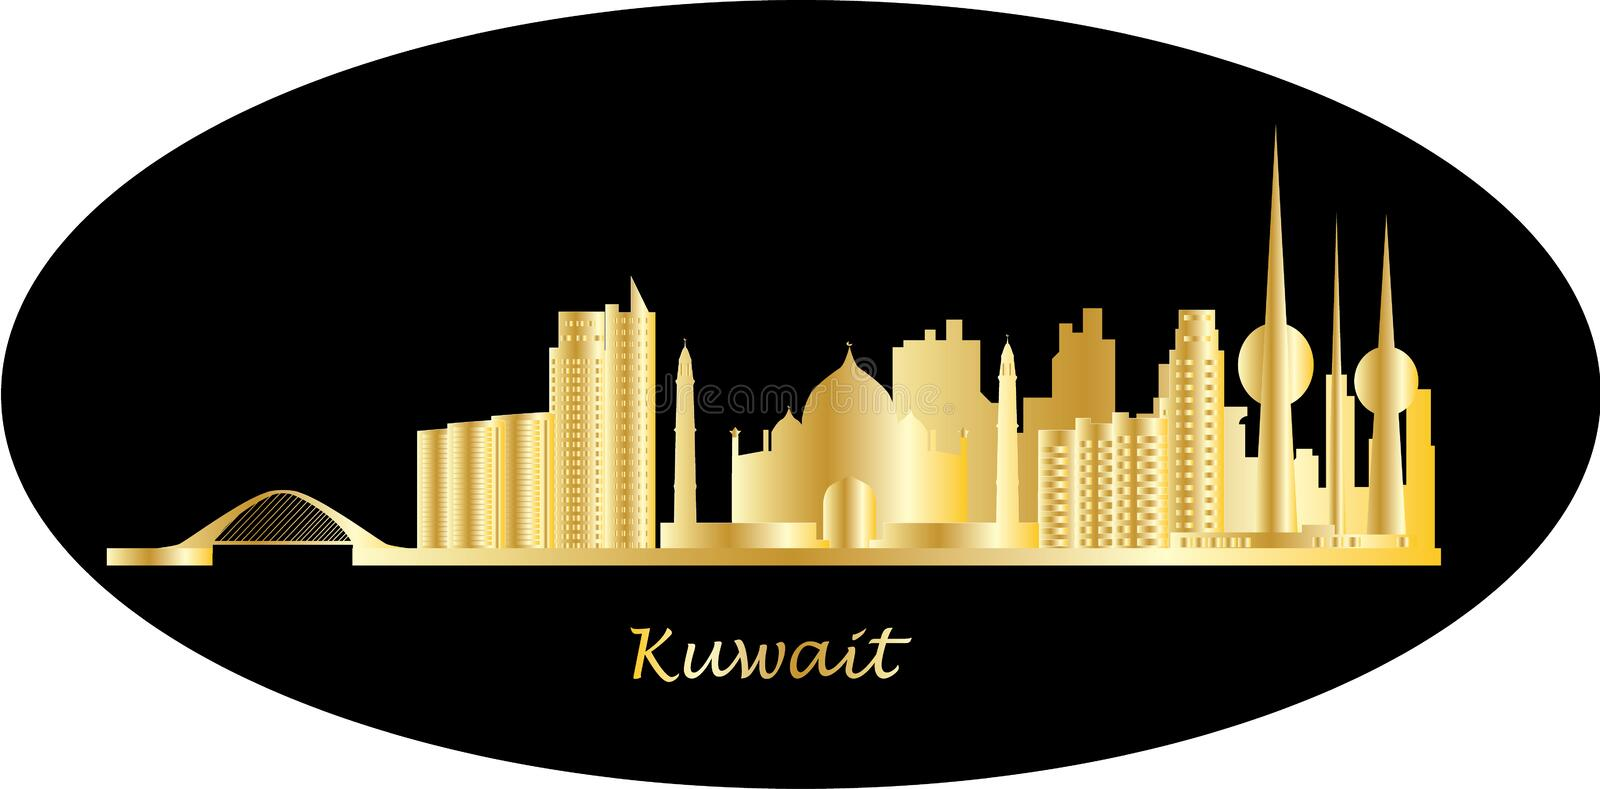 Kuwait horisont stock illustrationer